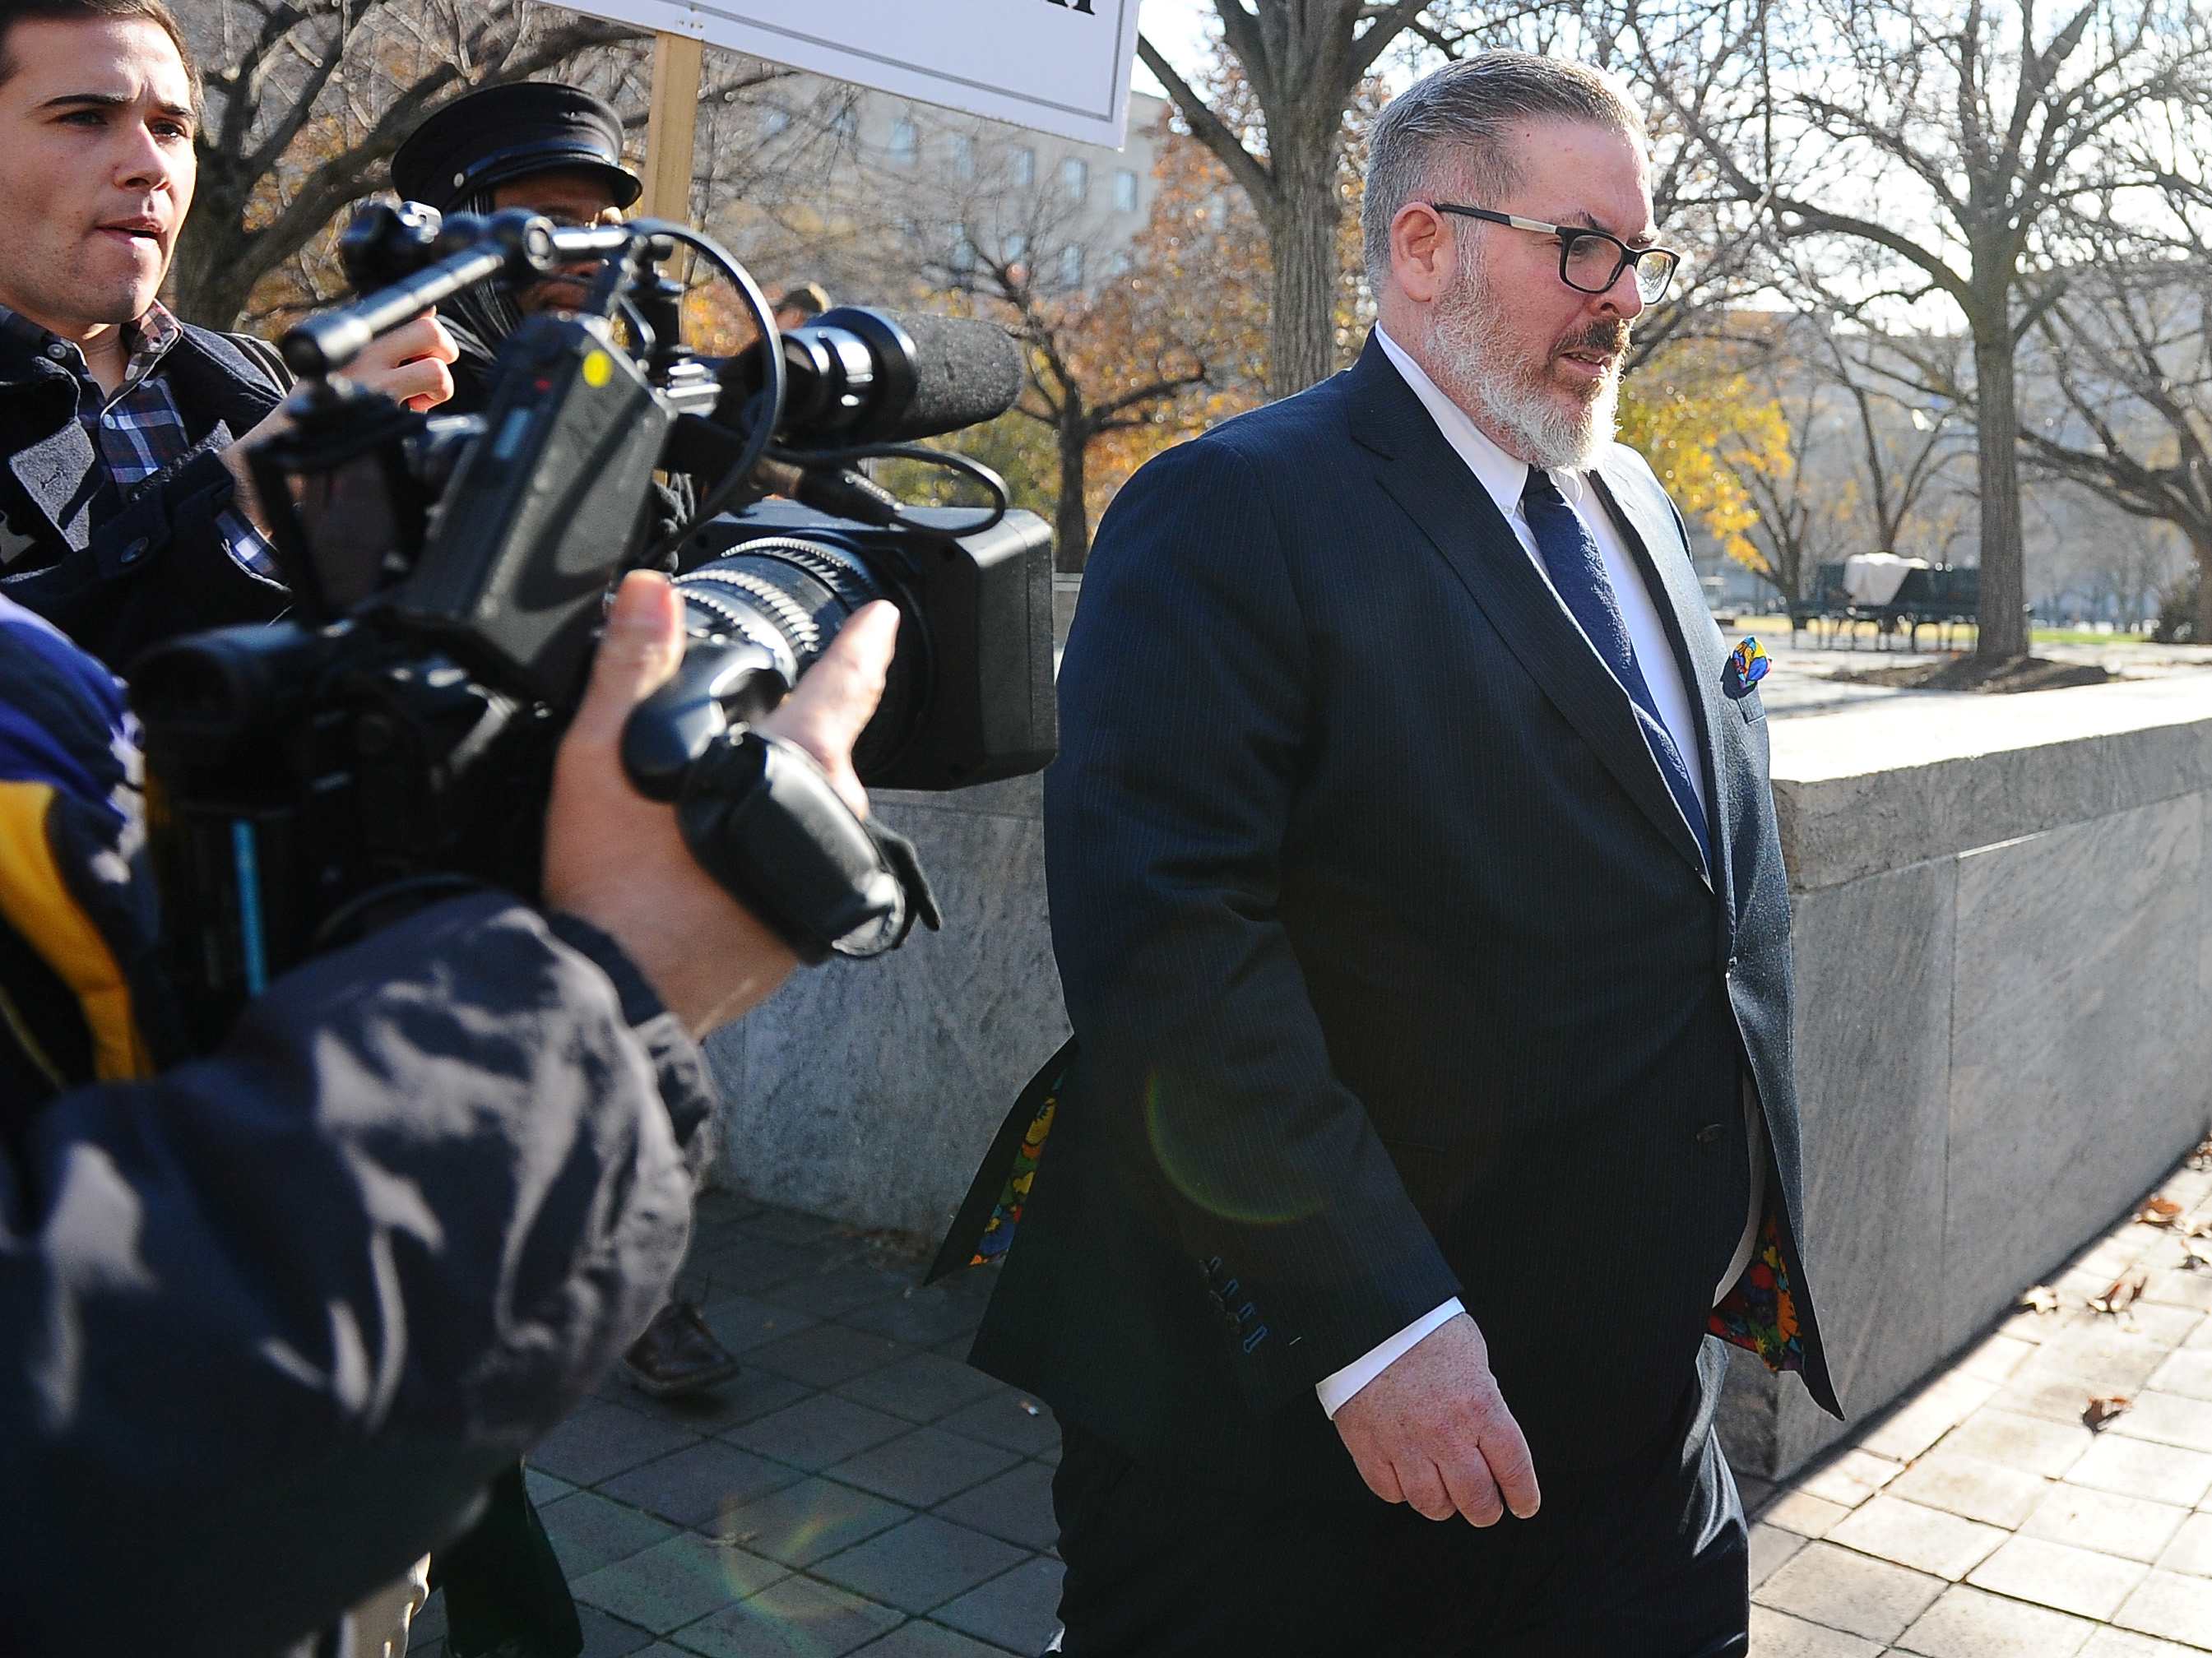 Robert Driscoll, an attorney for Maria Butina, who is accused of acting as a Russian agent to infiltrate the National Rifle Association lobby group and influence U.S. policy toward Moscow, leaves U.S. District Court after his client's plea hearing in Washington, U.S., December 13, 2018. REUTERS/Mary F. Calvert